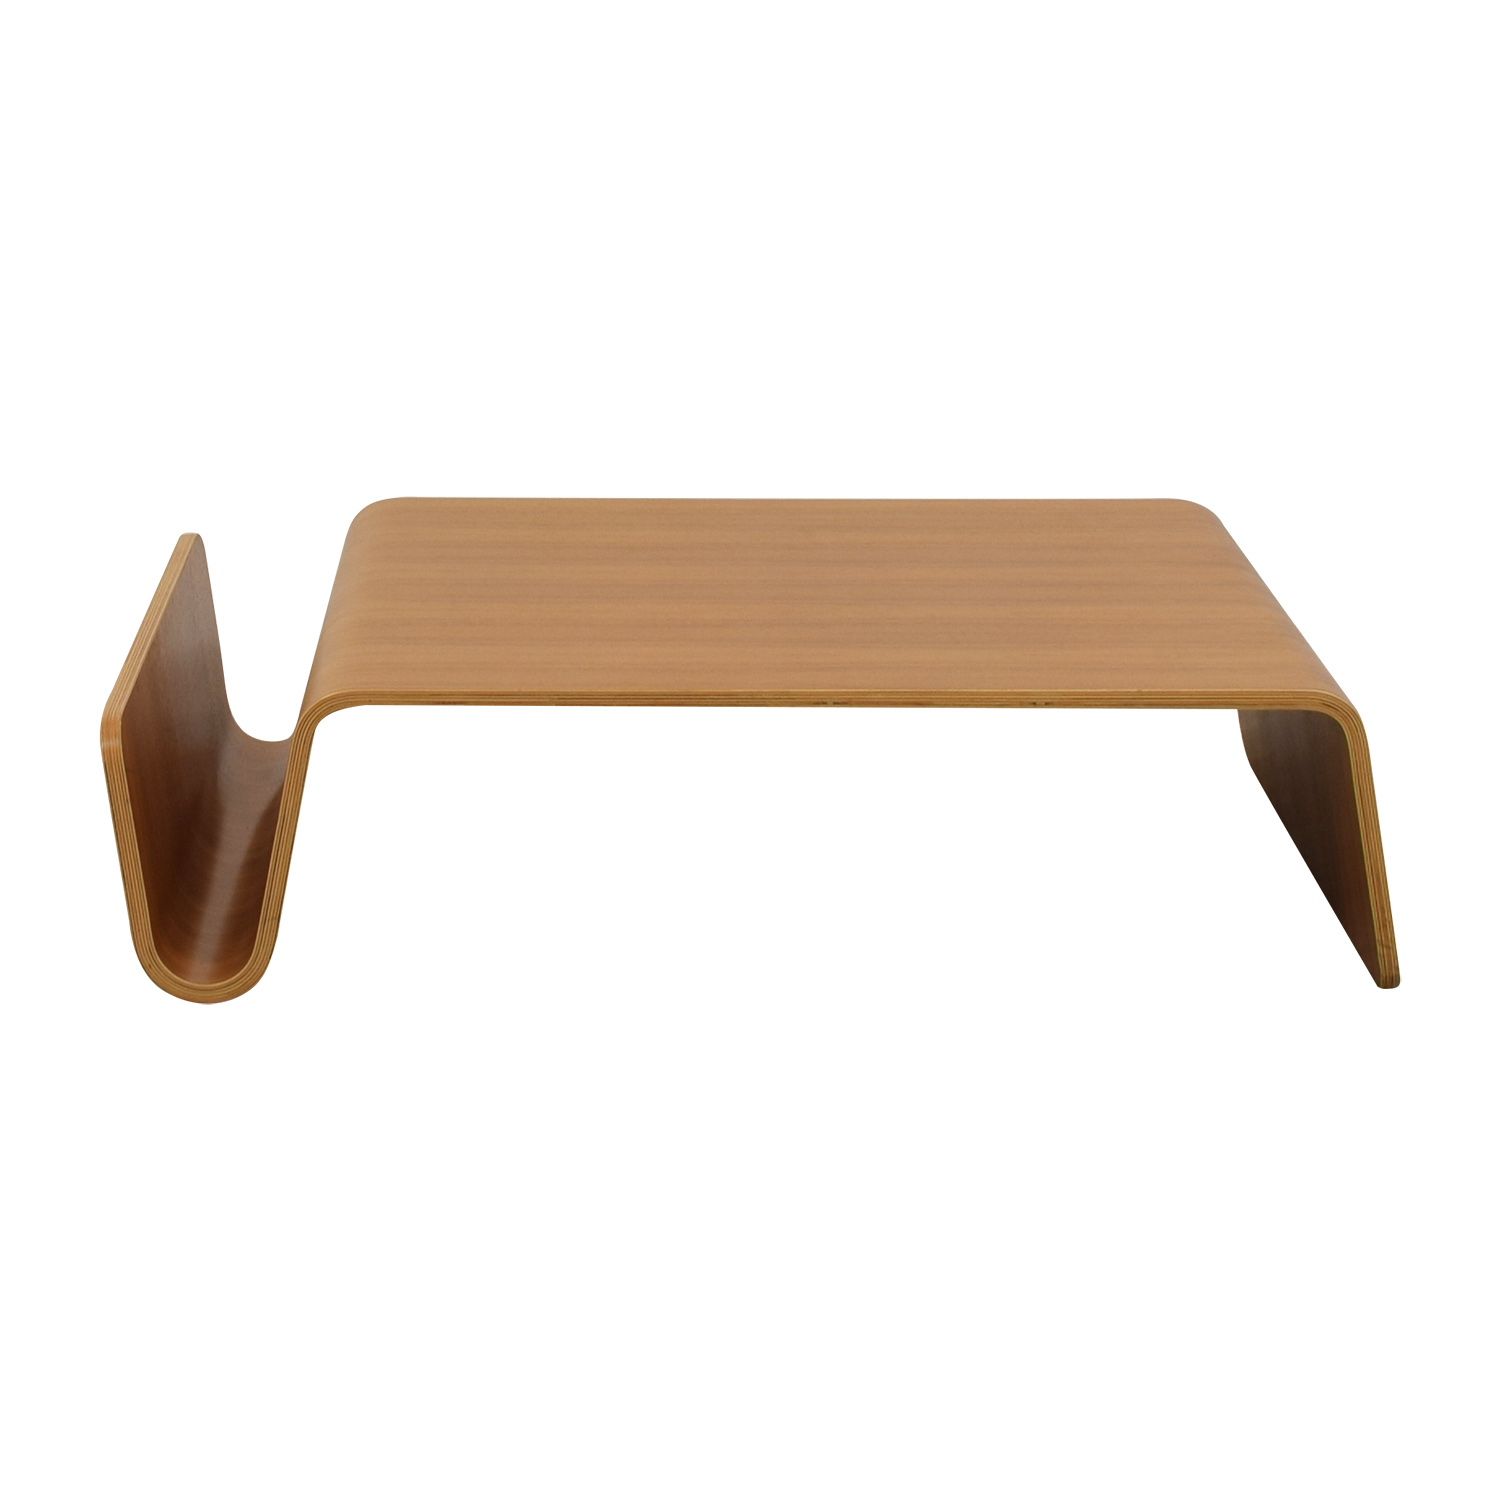 Offi U0026 Company Scando Table Offi U0026 Company ...